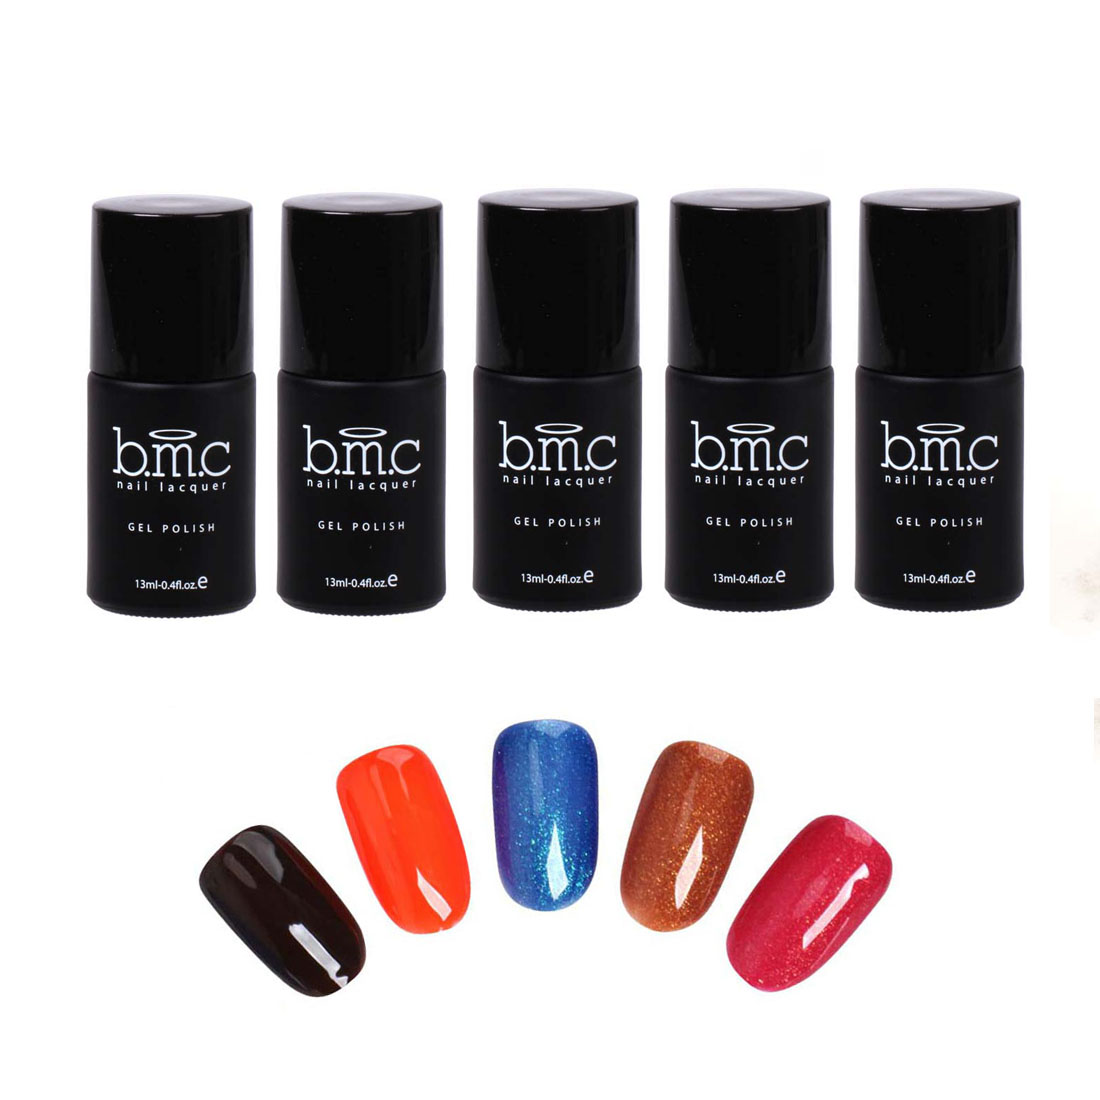 BMC Thermal Effect Color Changing Nail Lacquer Gel Polish - Awakening Collection